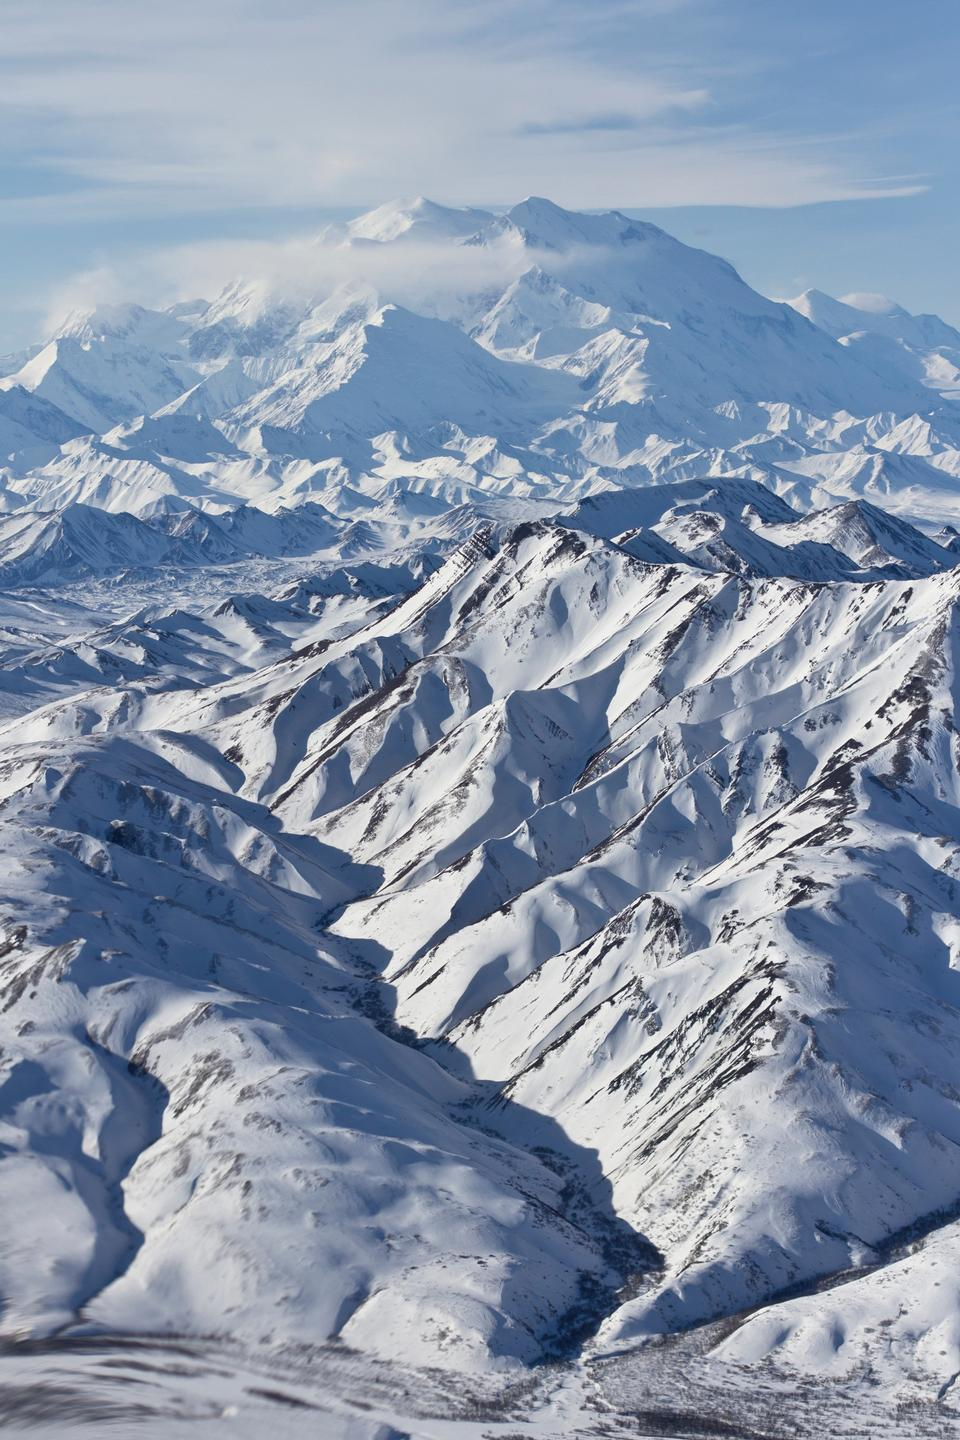 Free Photos: Denali and Range from Air Portrait | ustrekking